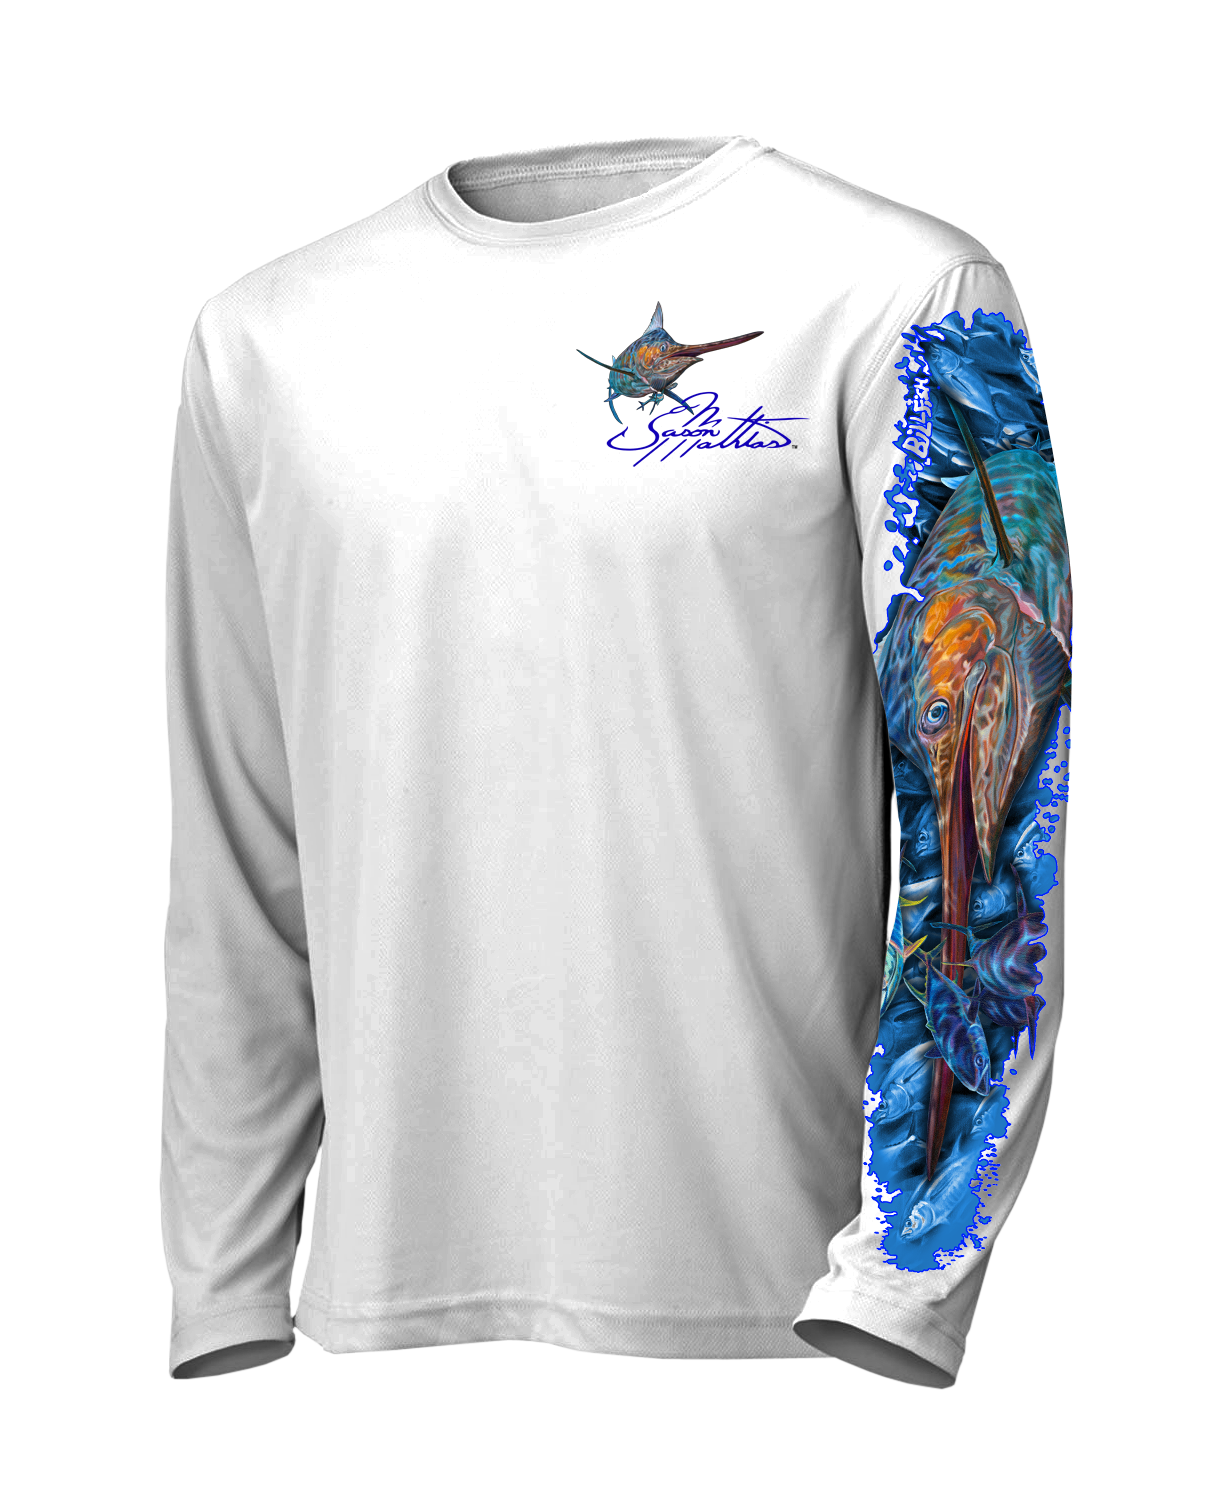 marlin-sailfish-white-front-shirt-jason-mathias-apparel-gear-fishing-gamefish-art-sportfish-art-tee-shirt-t-shirt-clothing.png